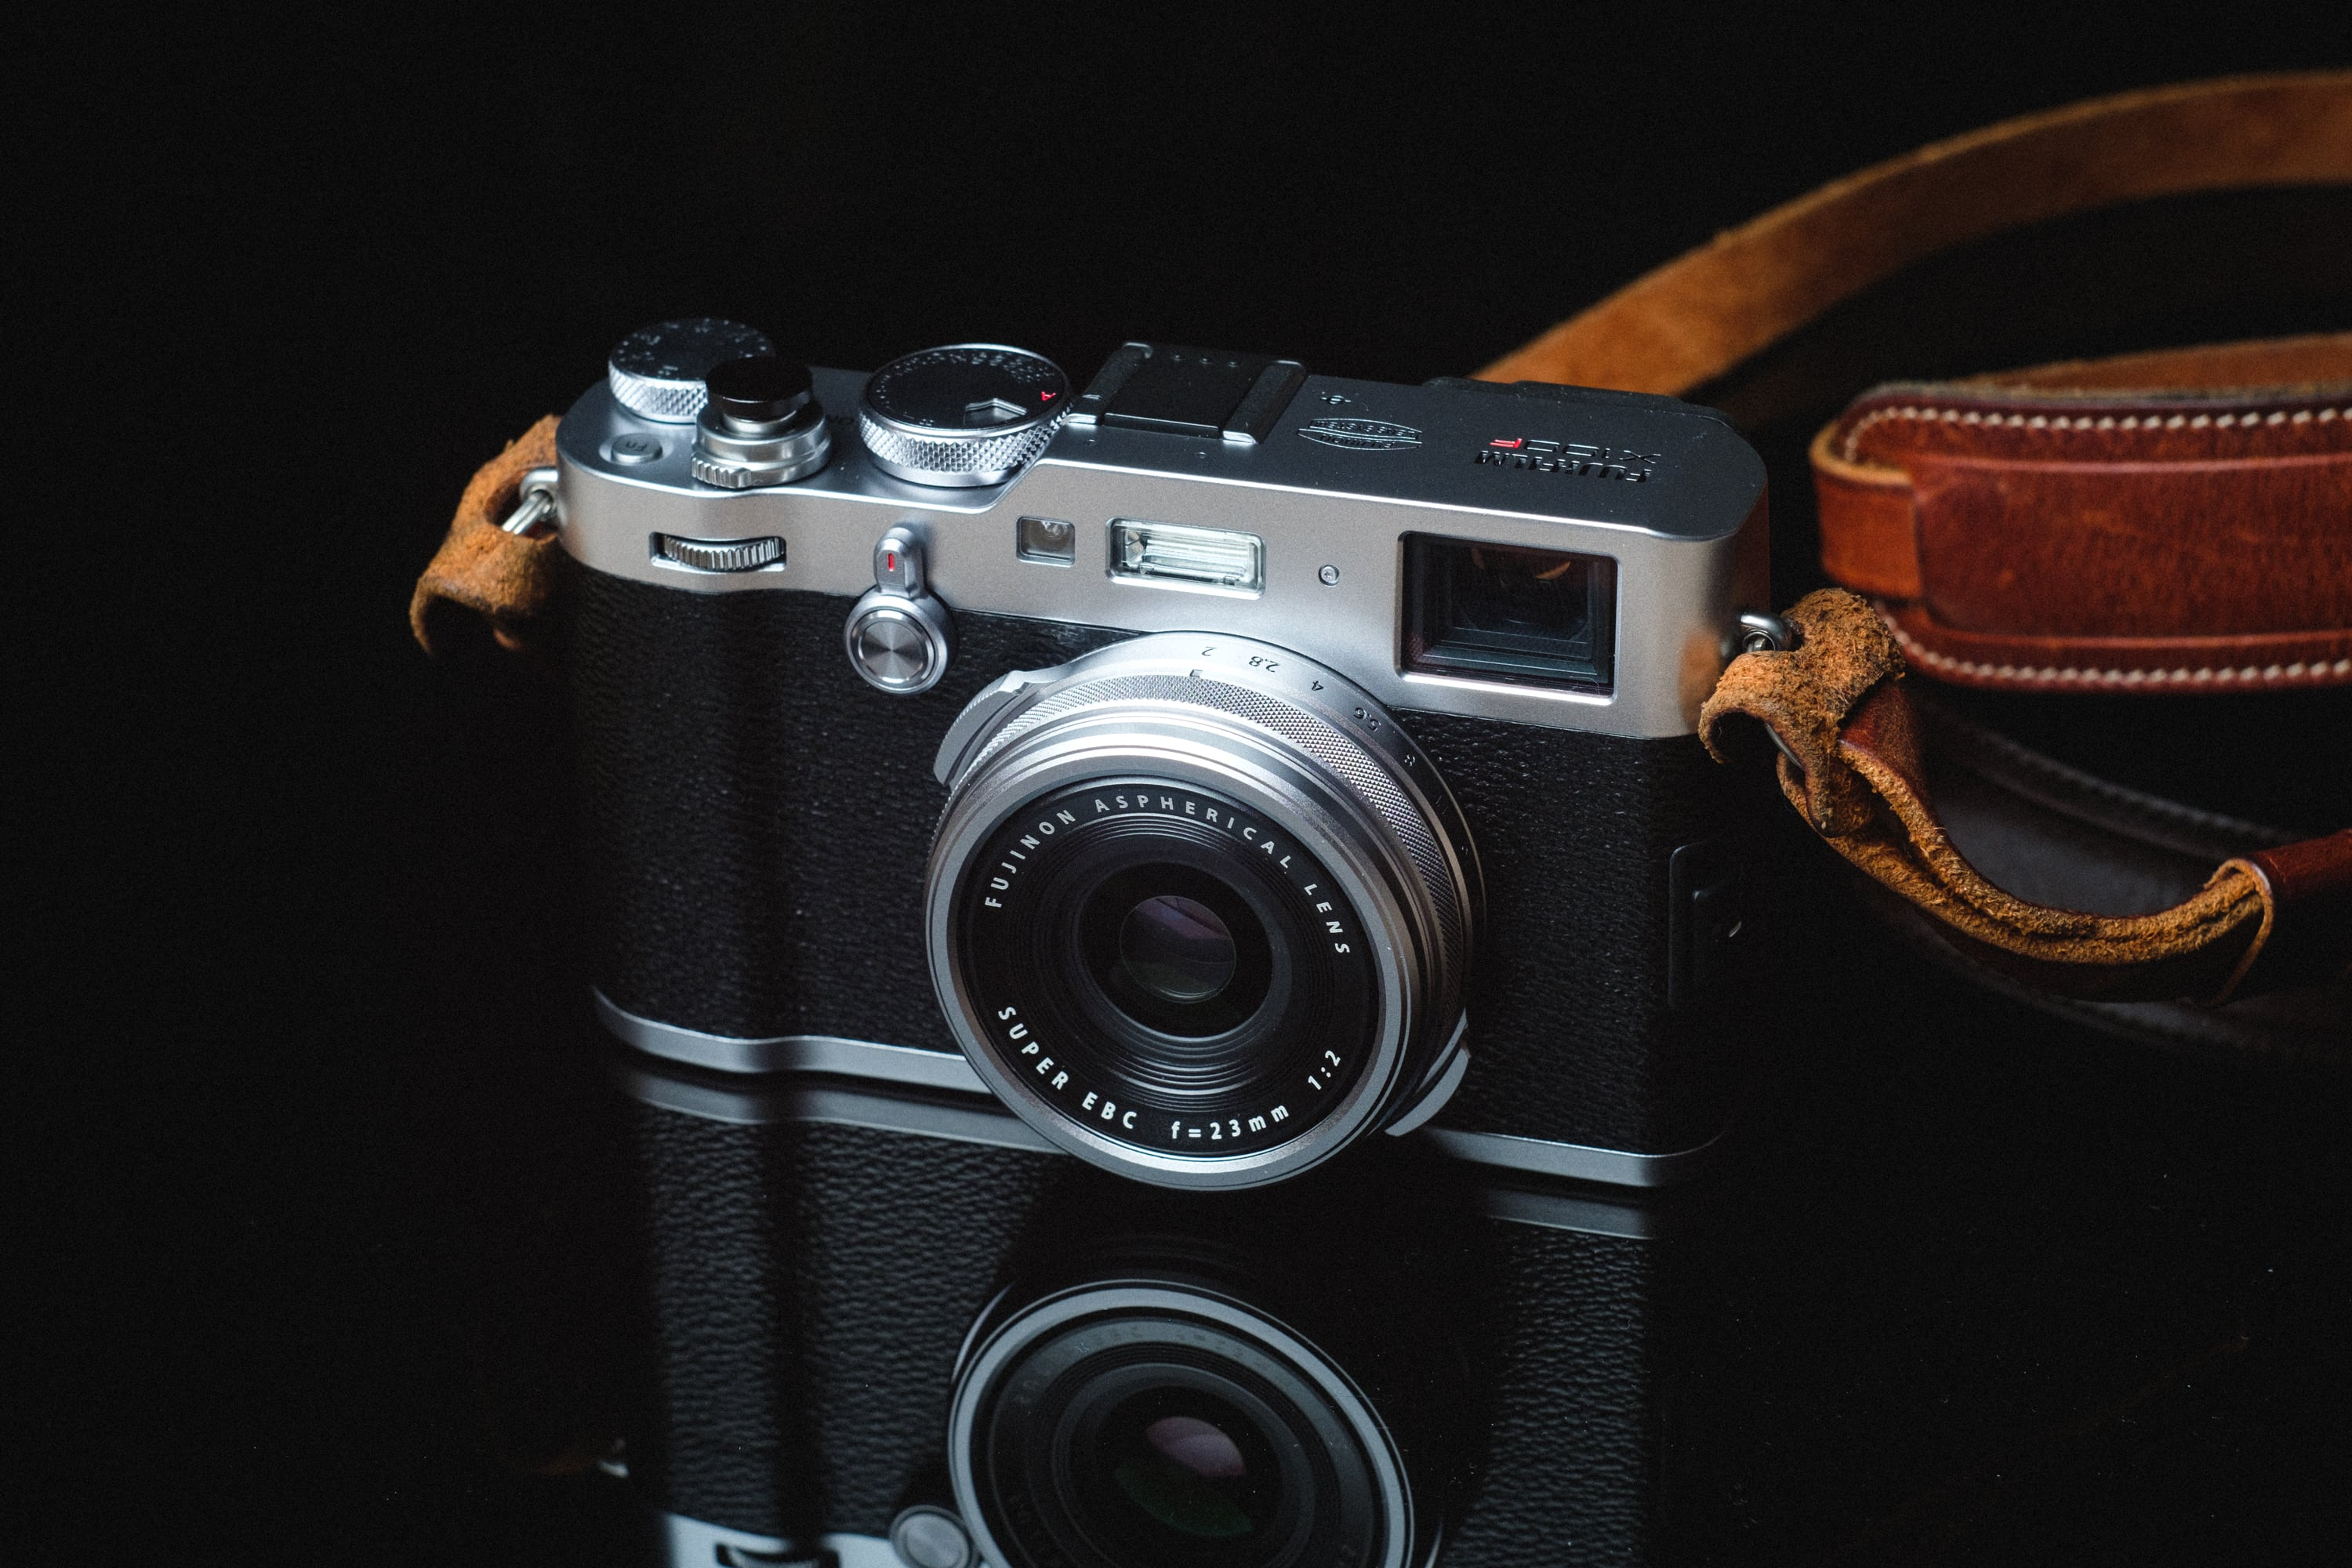 Best Accessories for the Fuji X100F